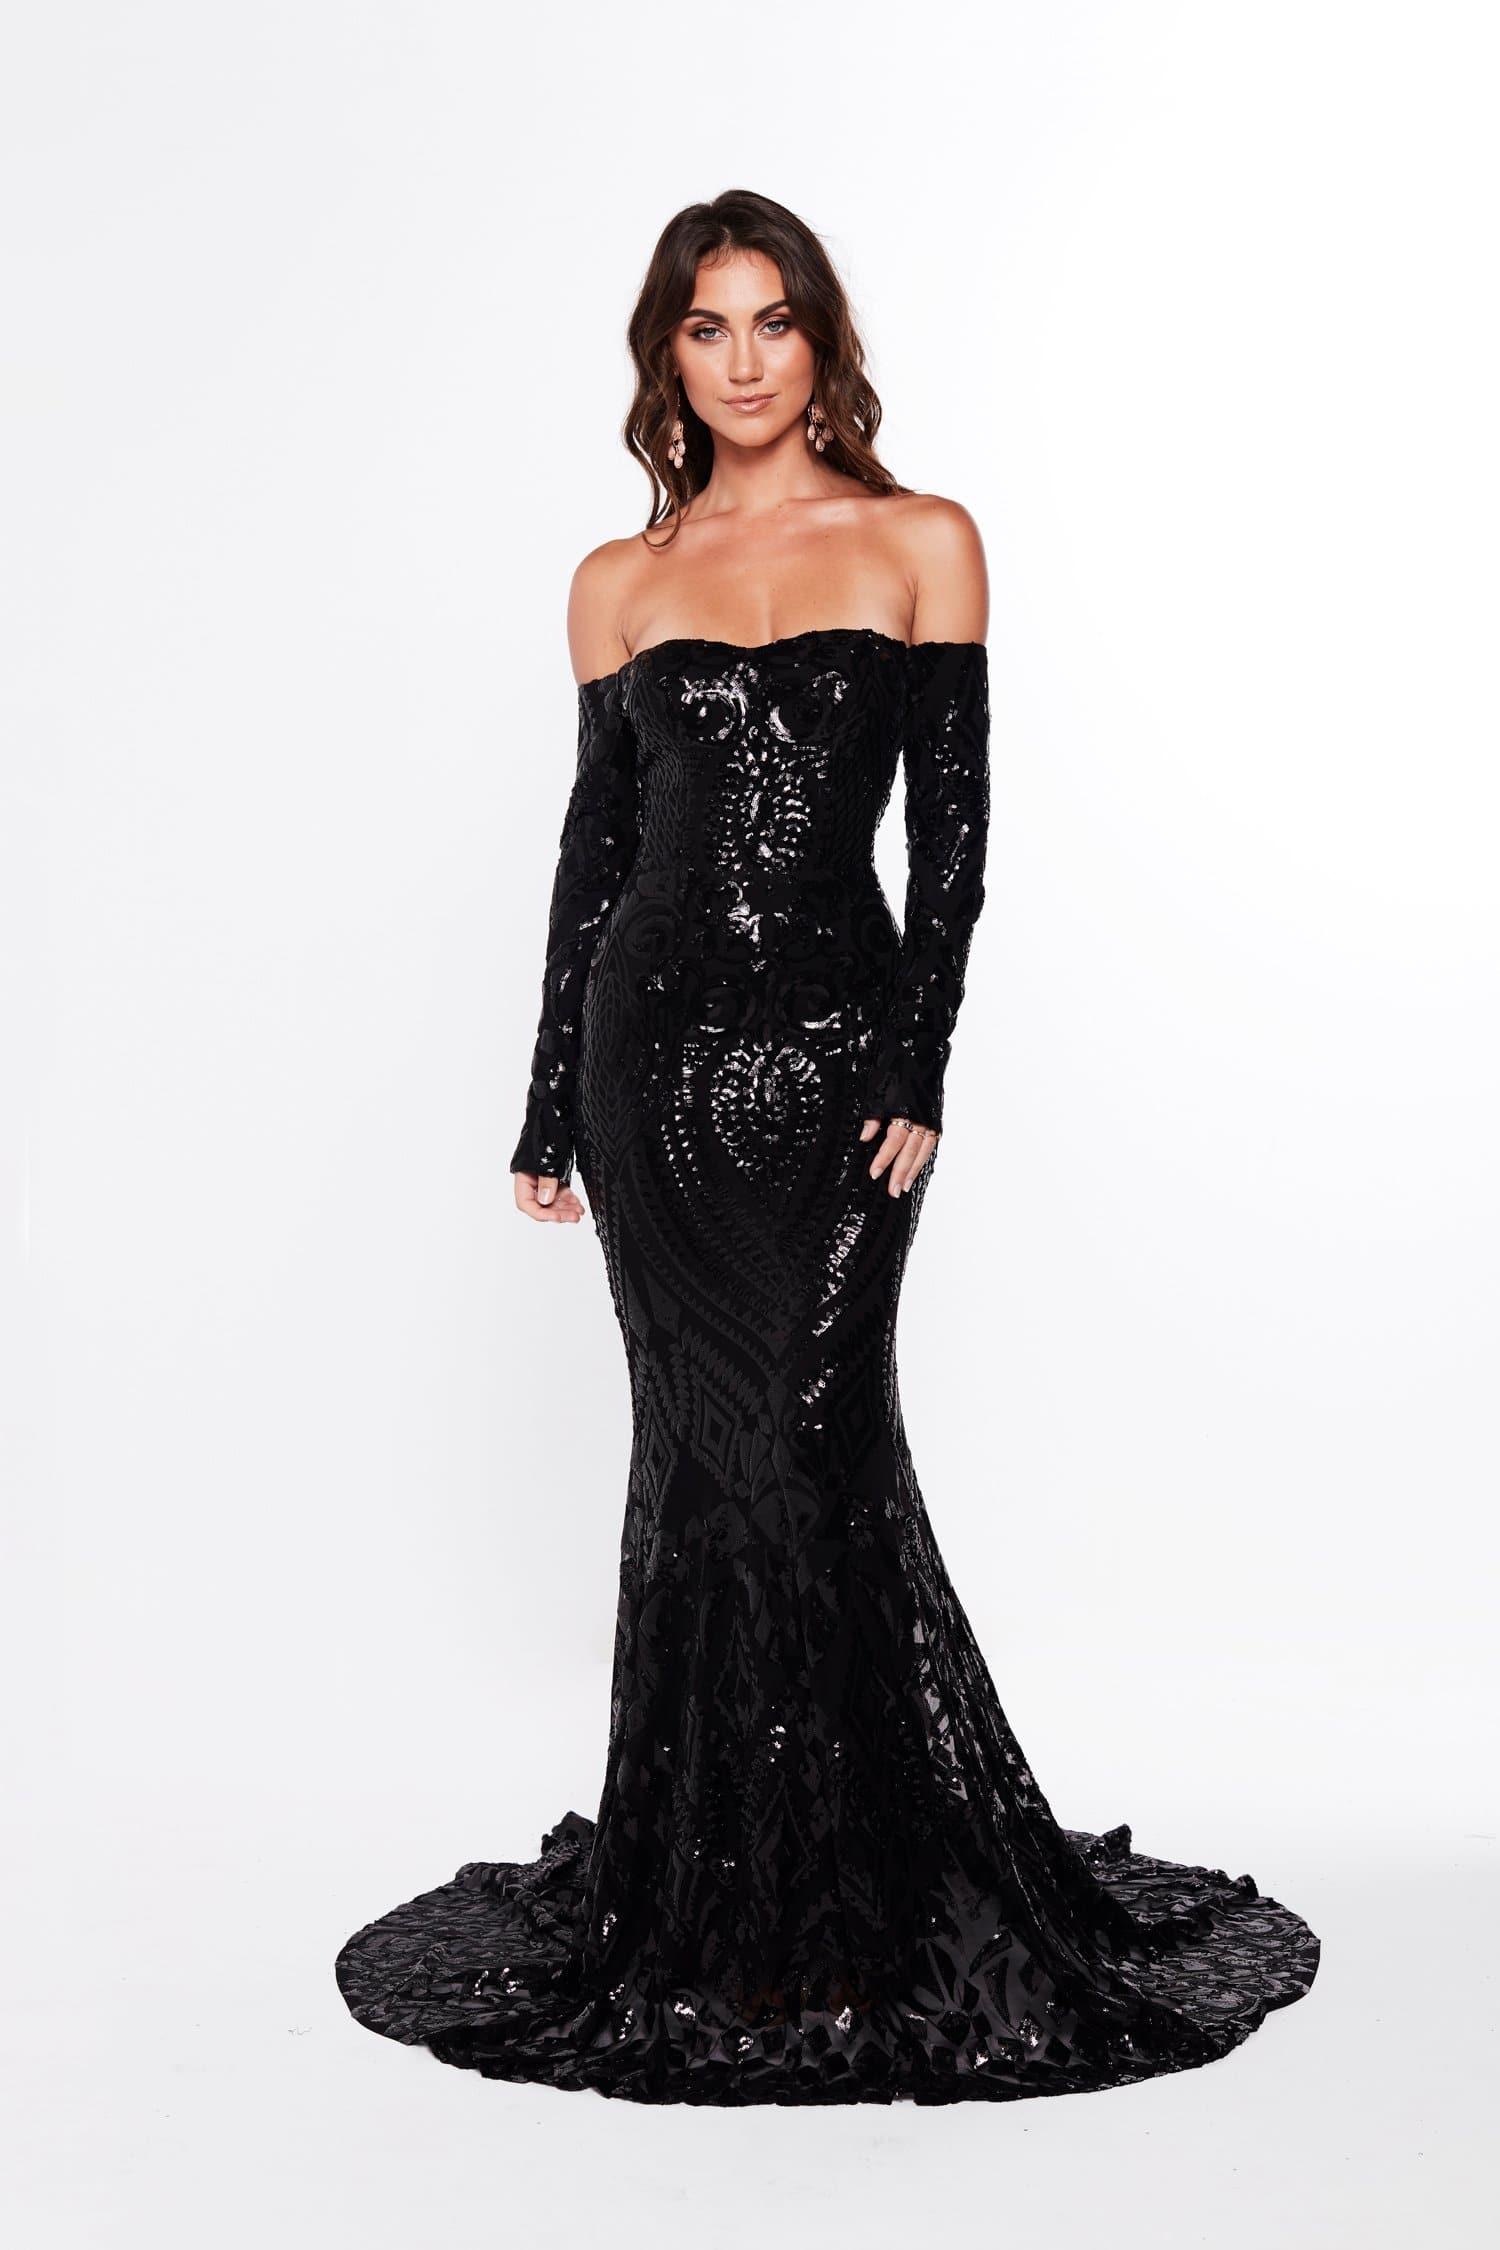 A&N Isidora - Black Sequin Gown with Long Sleeves and Mermaid Train ...